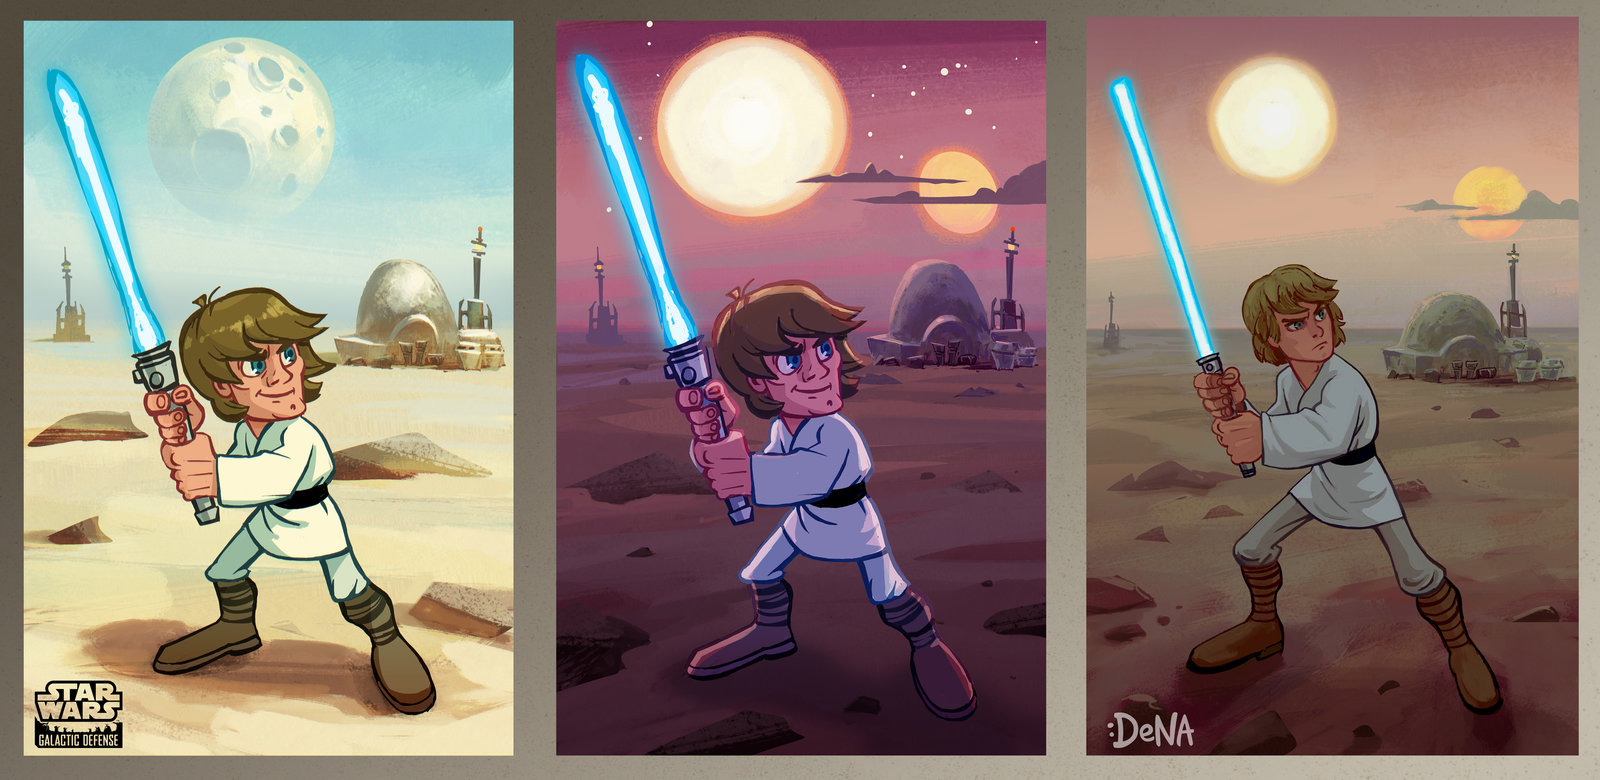 concept work for a Star Wars video game on Ipad